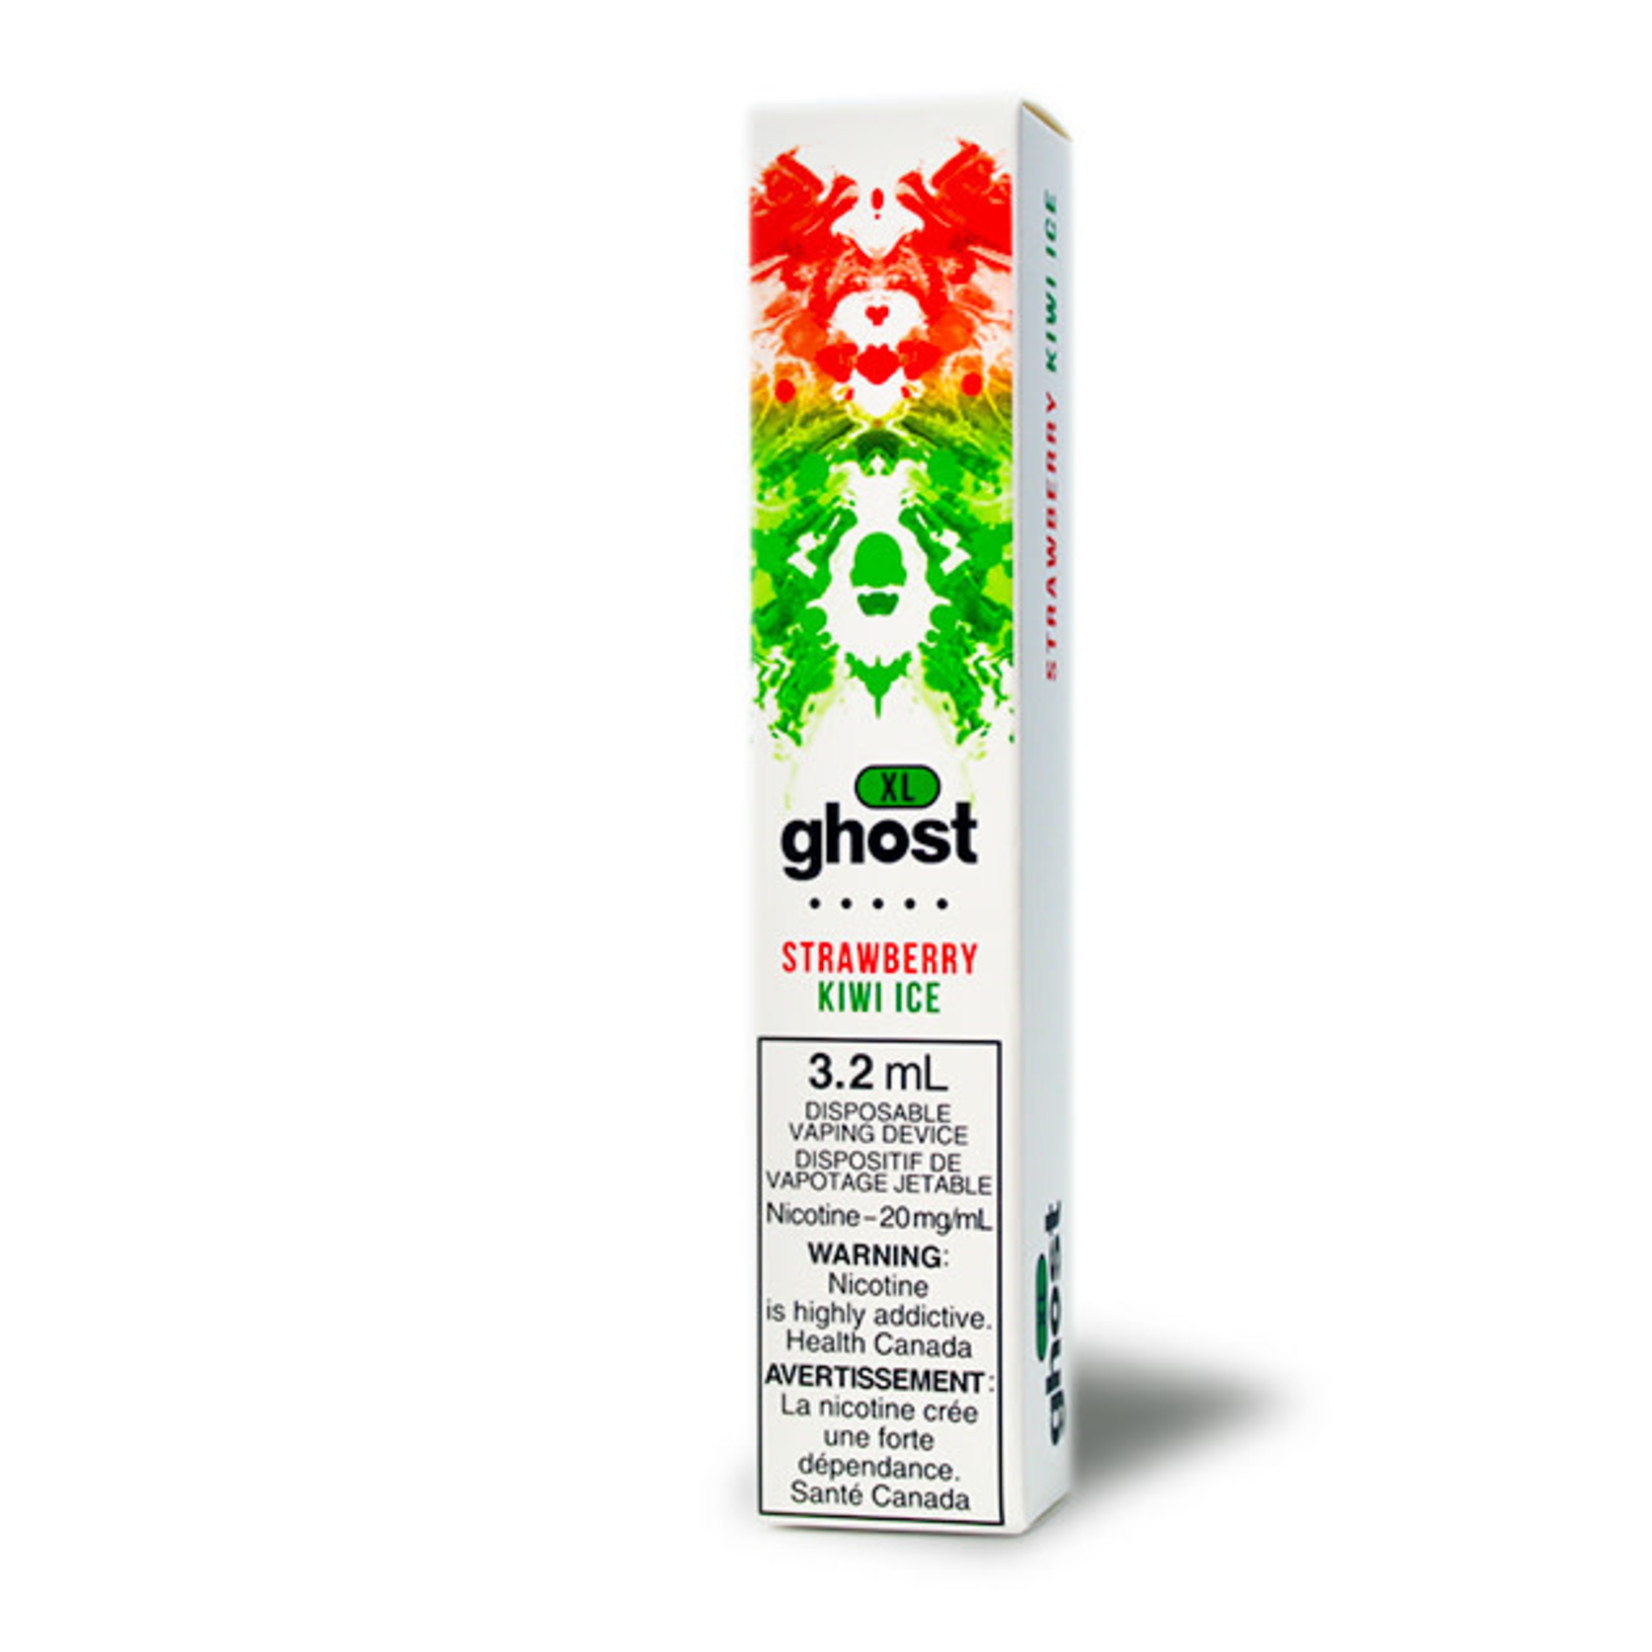 GHOST XL 800 PUFF Disposable Strawberry Kiwi Ice